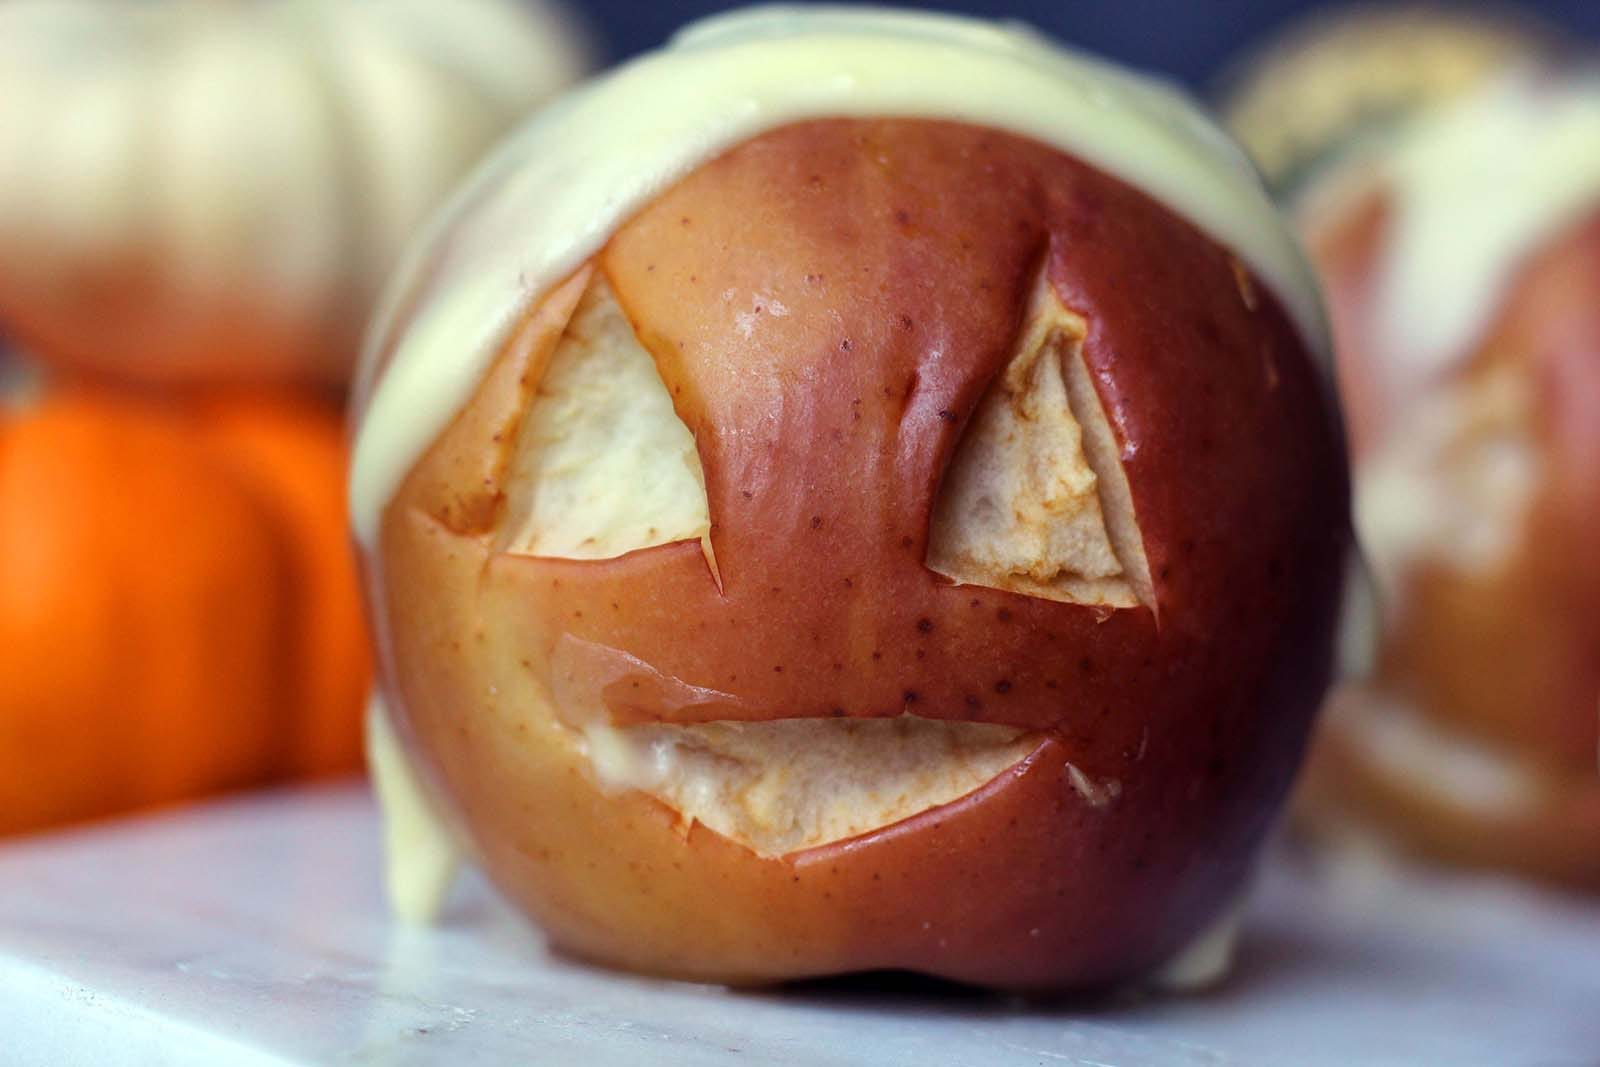 Baked Apple Carved into a shrunken head for halloween